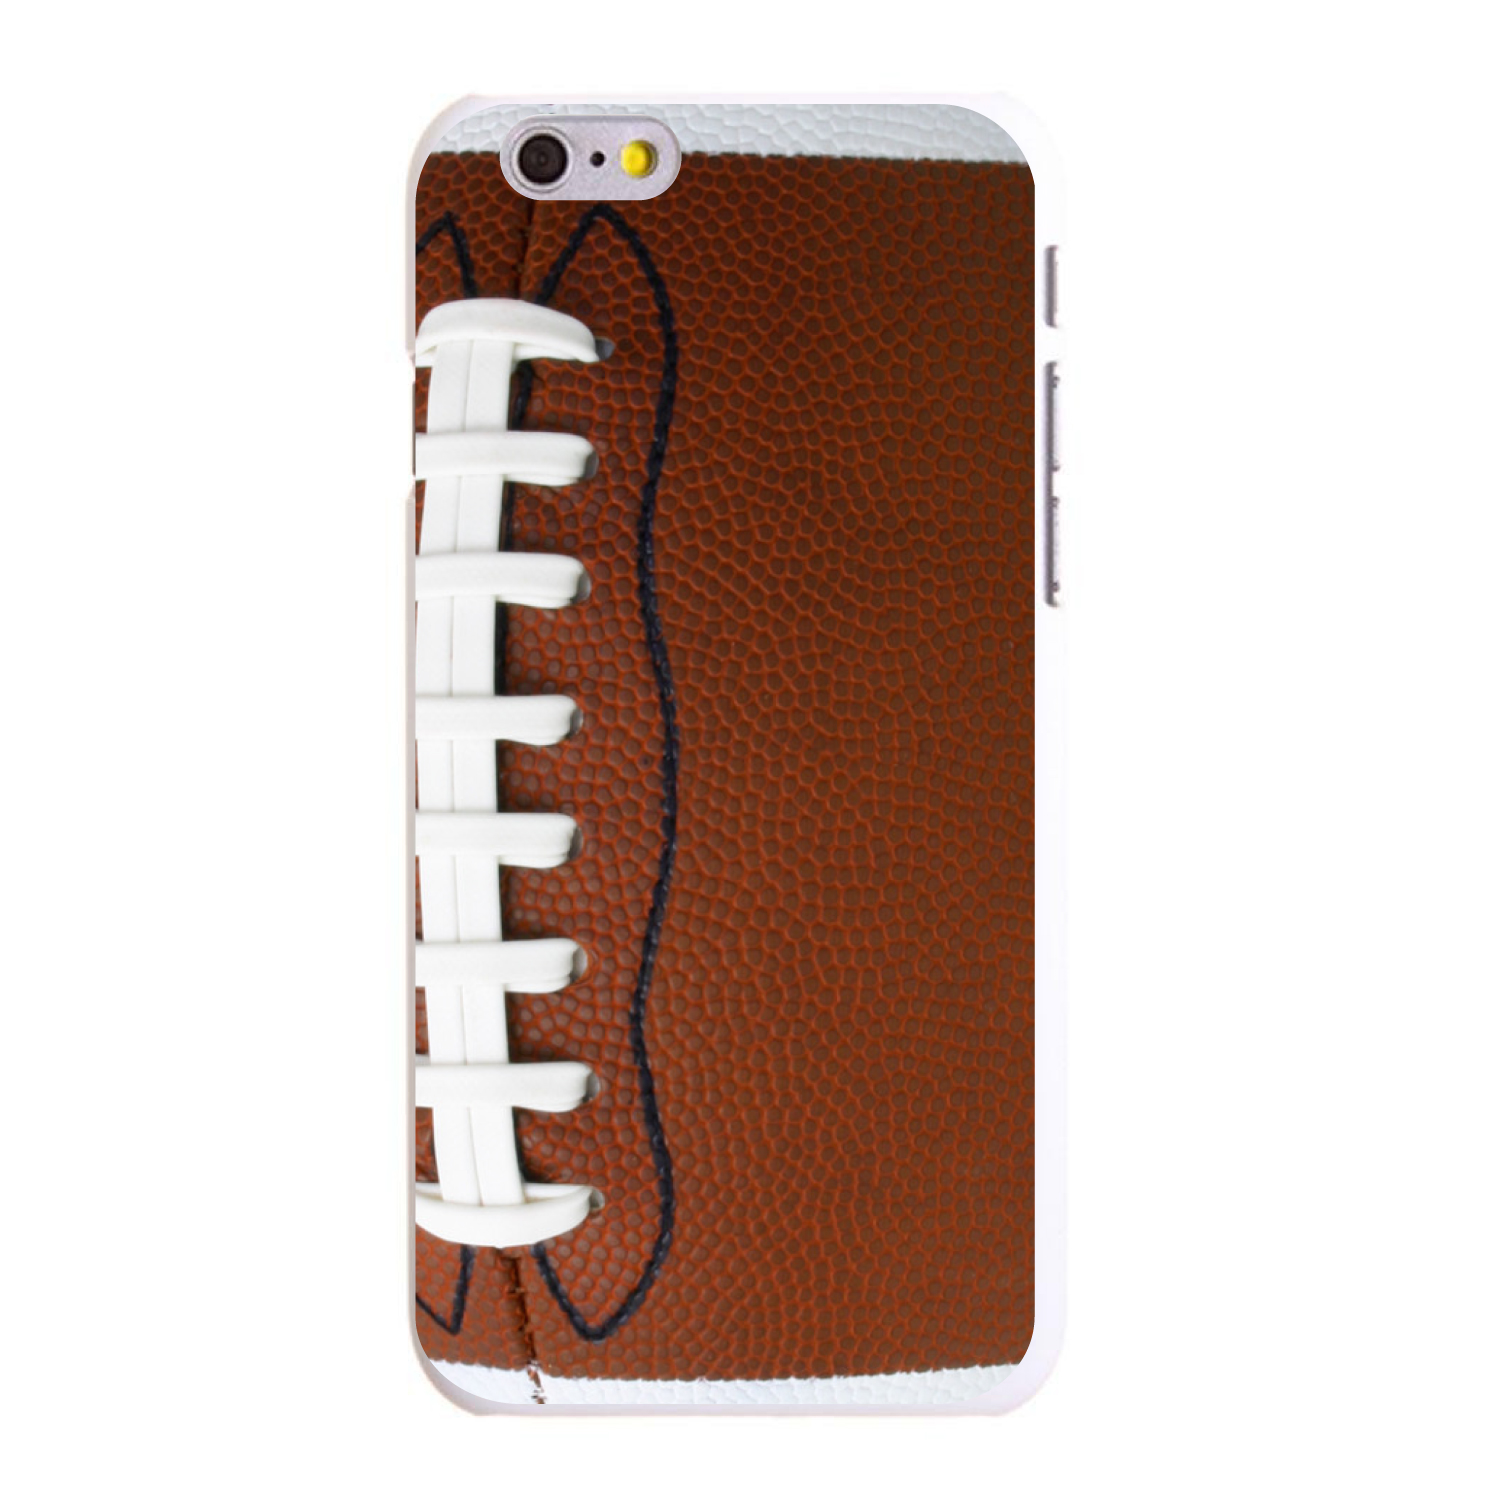 """CUSTOM White Hard Plastic Snap-On Case for Apple iPhone 6 PLUS / 6S PLUS (5.5"""" Screen) - Football Texture Photo Laces"""